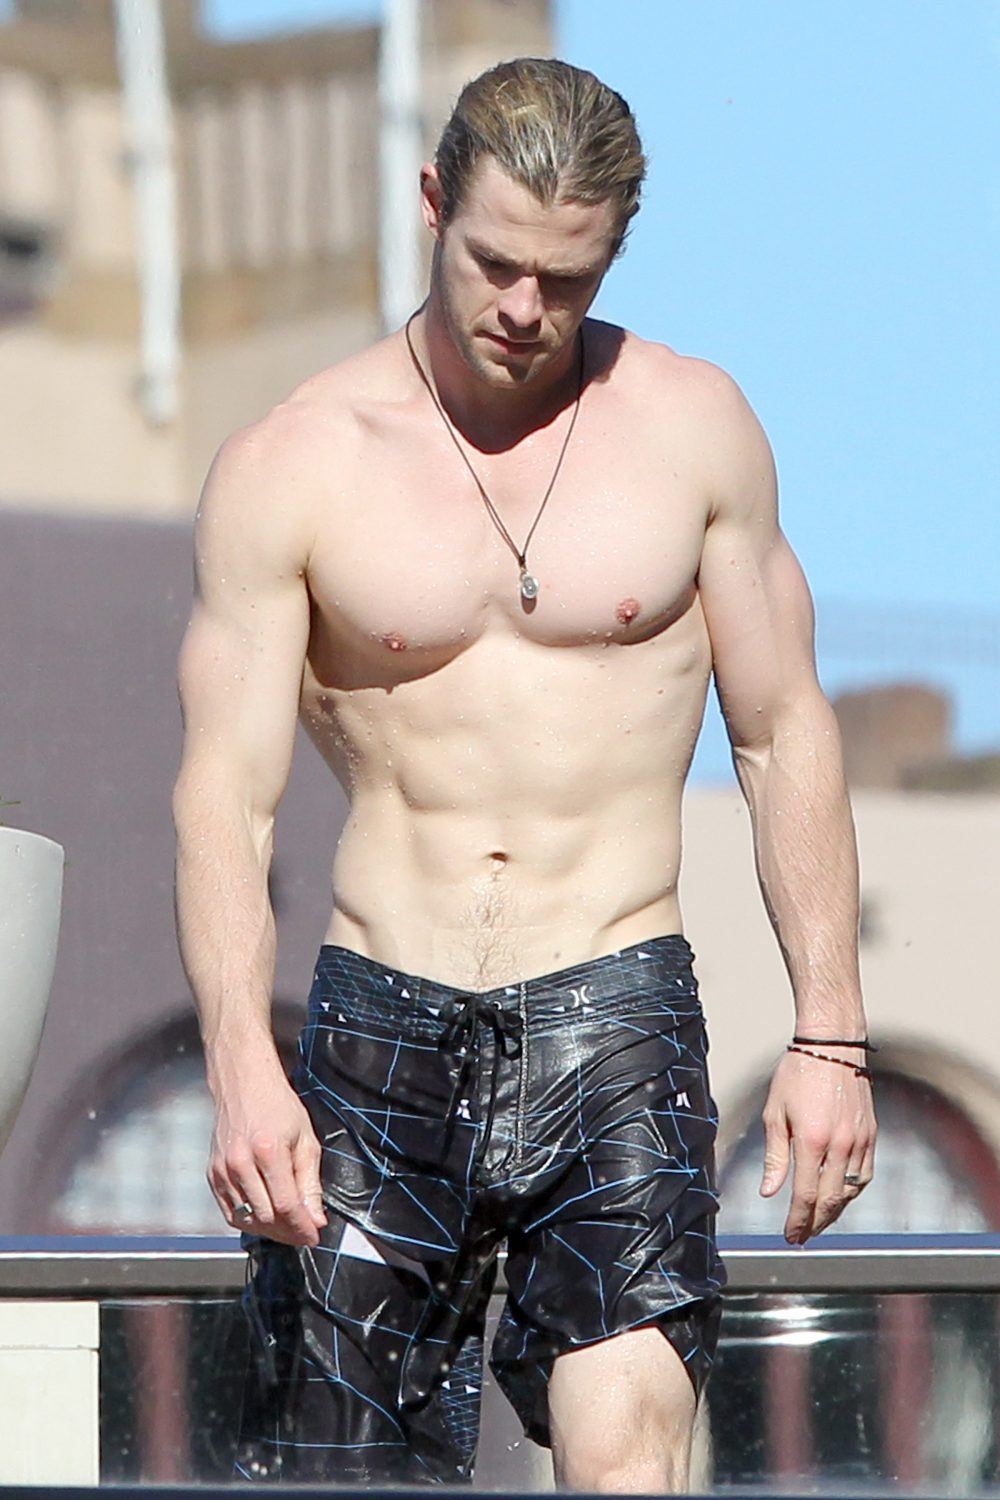 Chris Hemsworth shows off his ripped body as he chills by his hotel pool. Pictured: Chris Hemsworth Ref: SPL407263 180612 Picture by: Blue Wasp/Grey Wasp/Splash News Splash News and Pictures Los Angeles:310-821-2666 New York: 212-619-2666 London: 870-934-2666 photodesk@splashnews.com